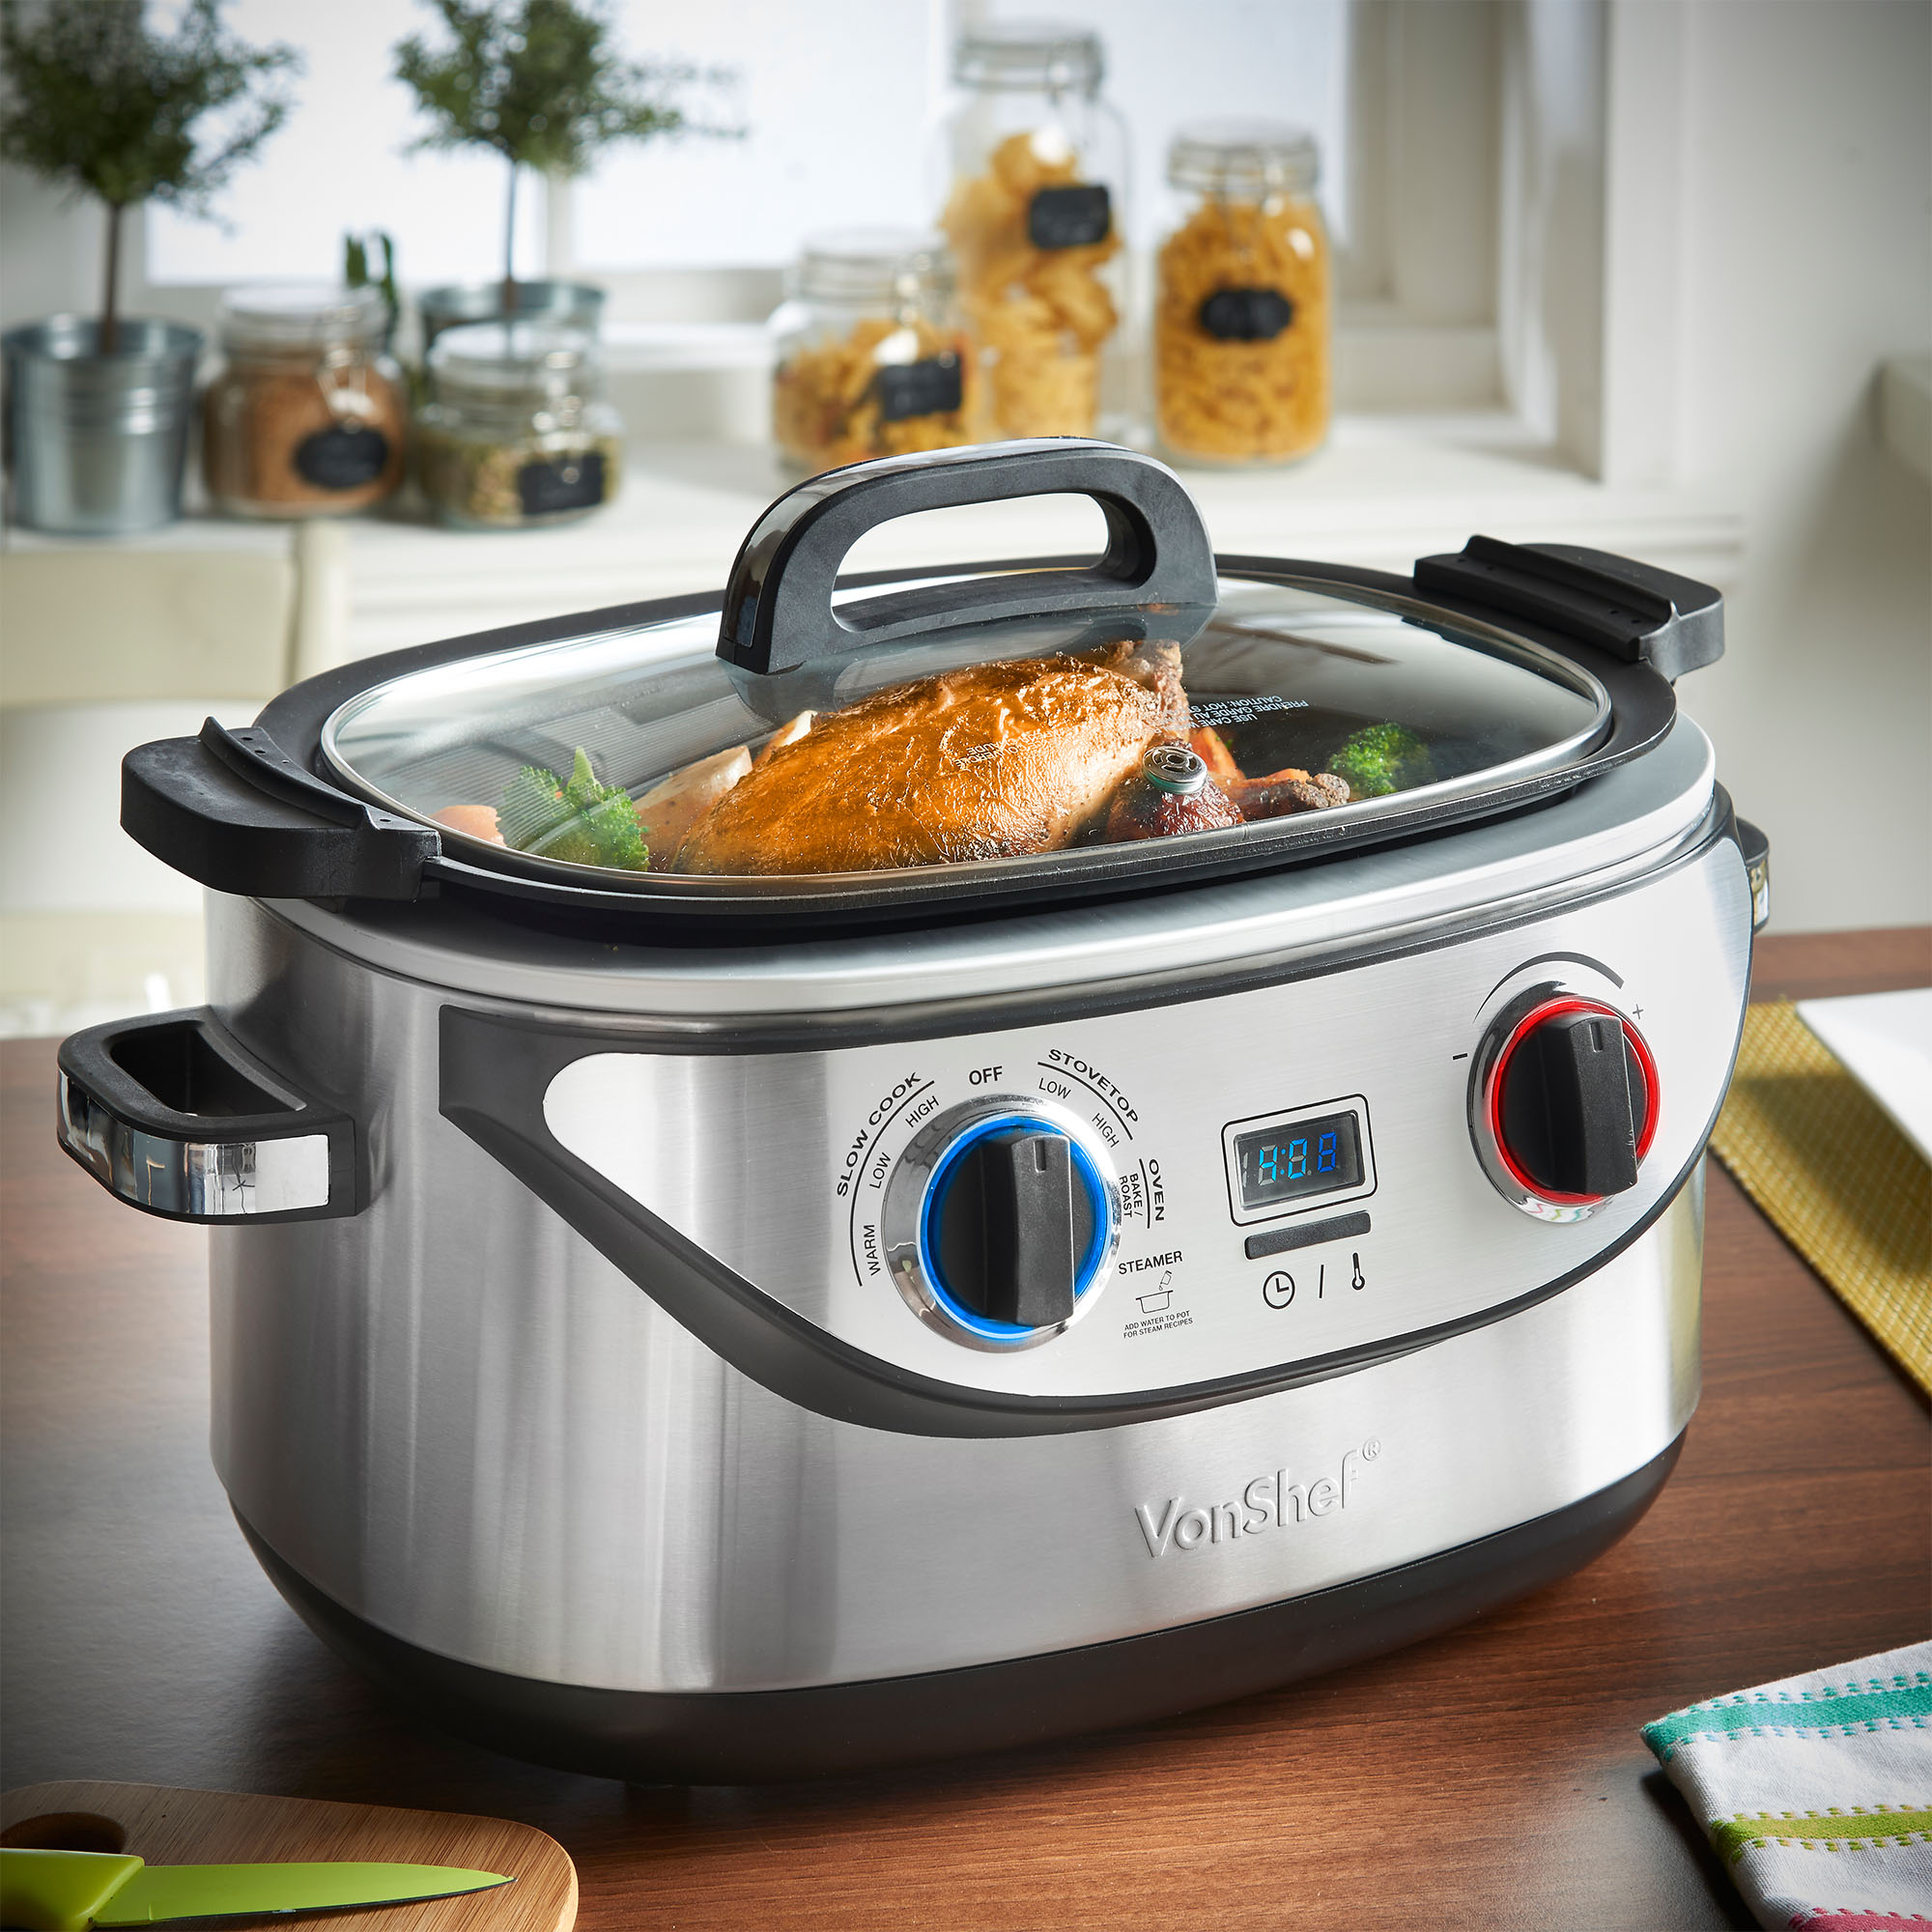 Sentinel Vonshef 8 In 1 Multi Function Cooker Non Stick Slow Cook Steam Roast Bake Sear